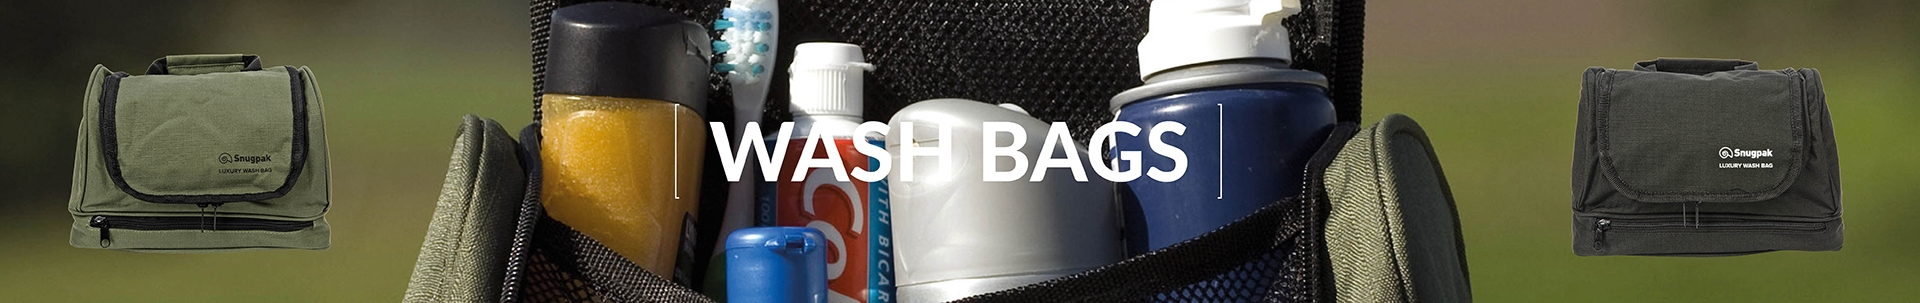 Wash Bags